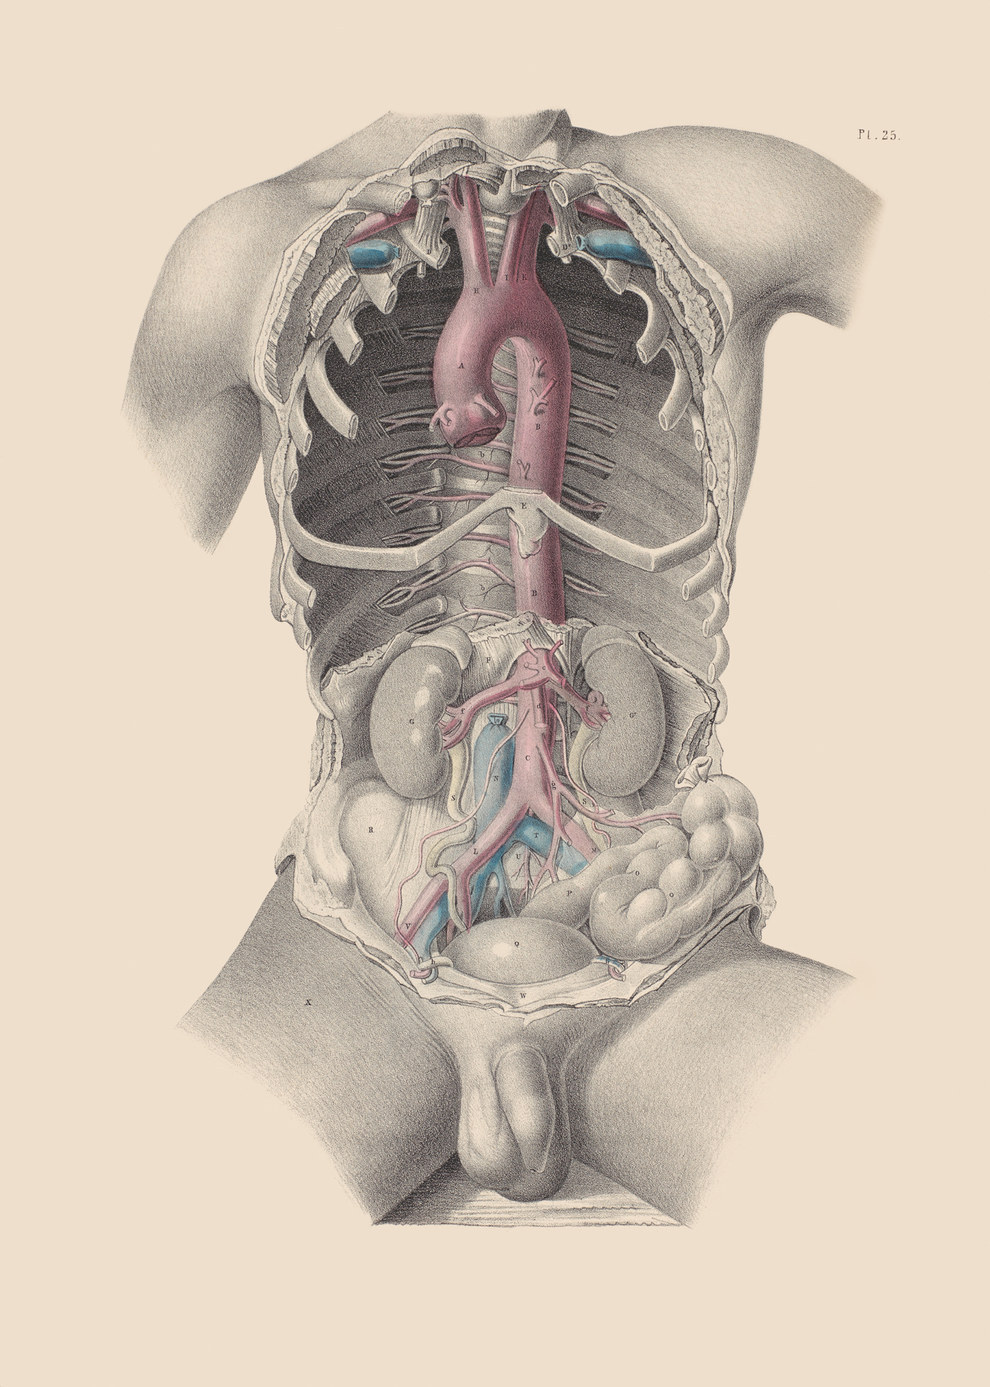 Dissection showing the aorta and the major arteries of the thorax (the bit inside the ribcage) and abdomen.